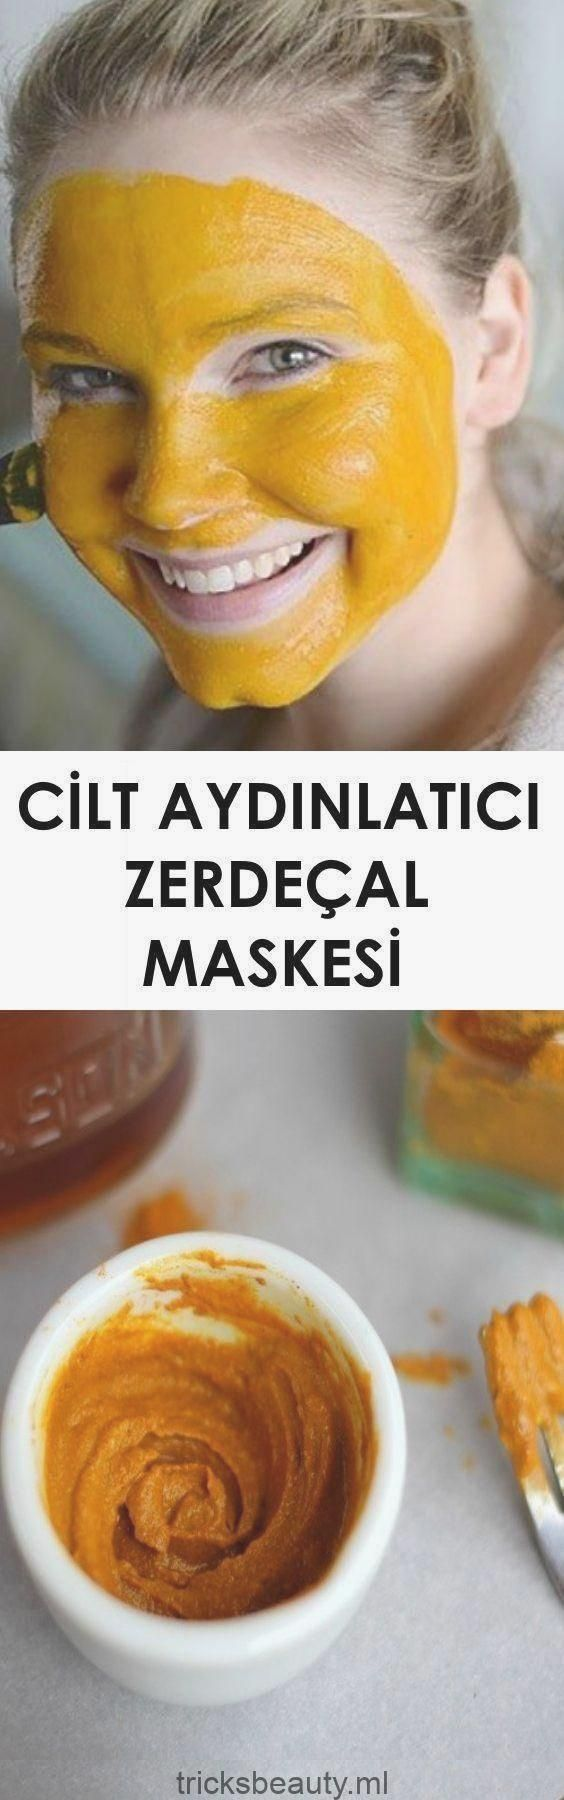 Photo of #skin care #aydnlatc #mask #zerdeal #mask #there skin care …